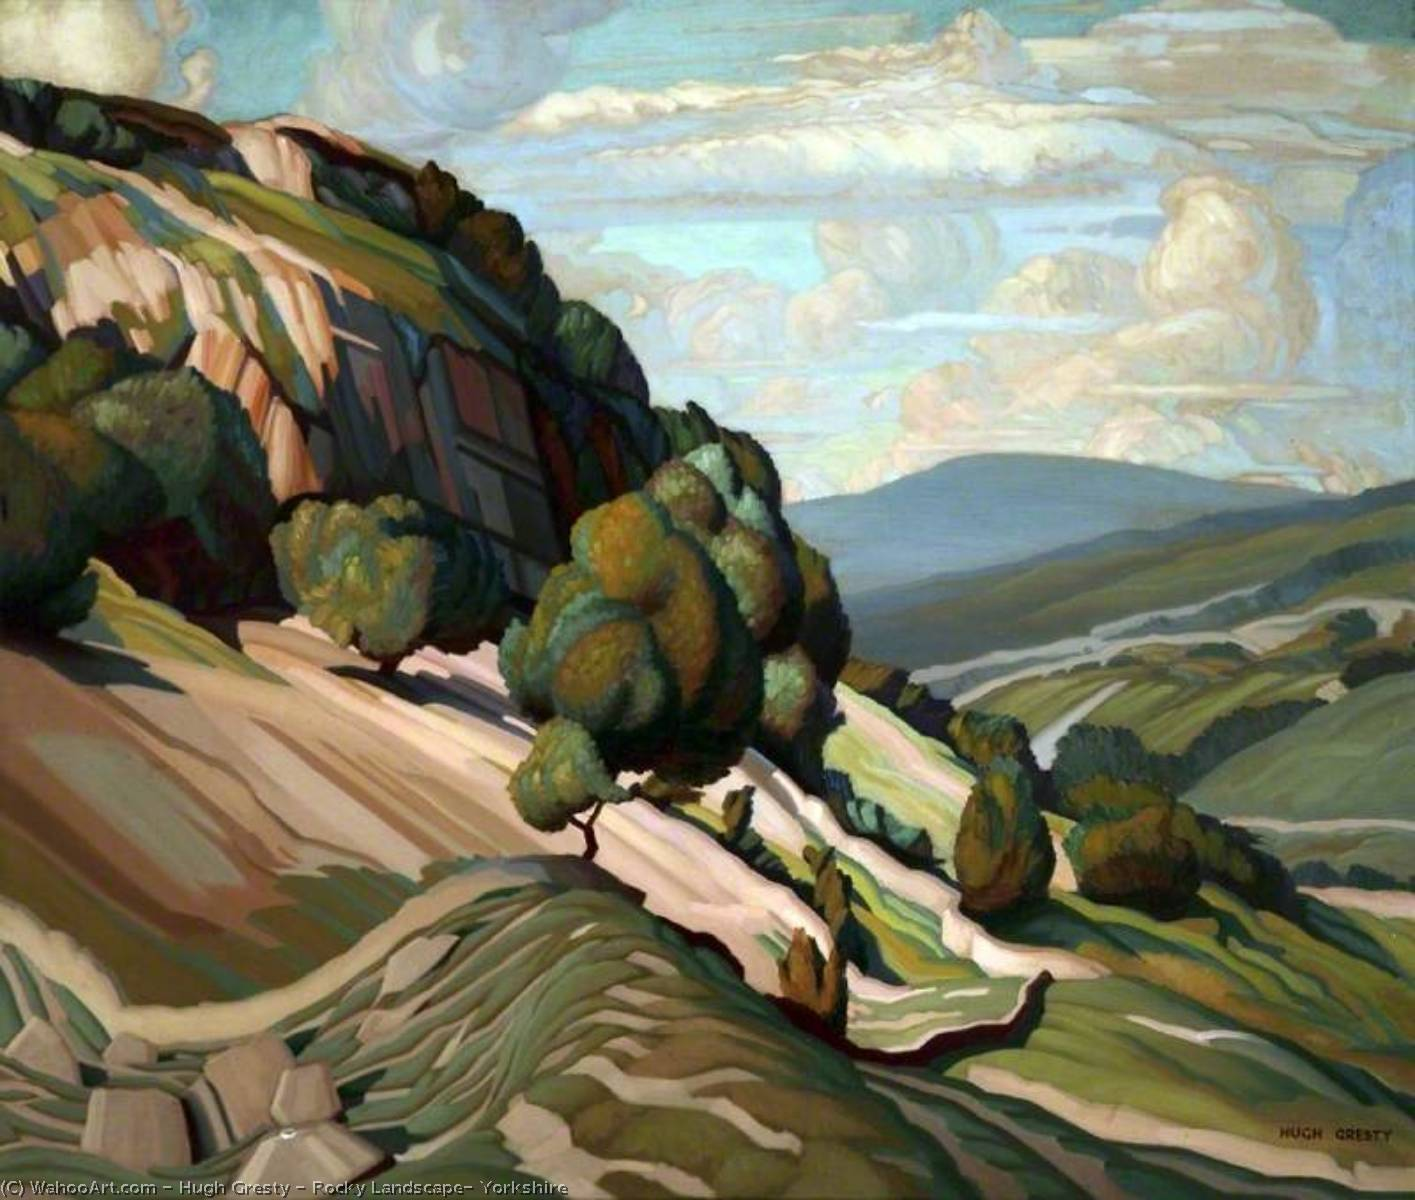 Order Reproductions | Rocky Landscape, Yorkshire by Hugh Gresty | WahooArt.com